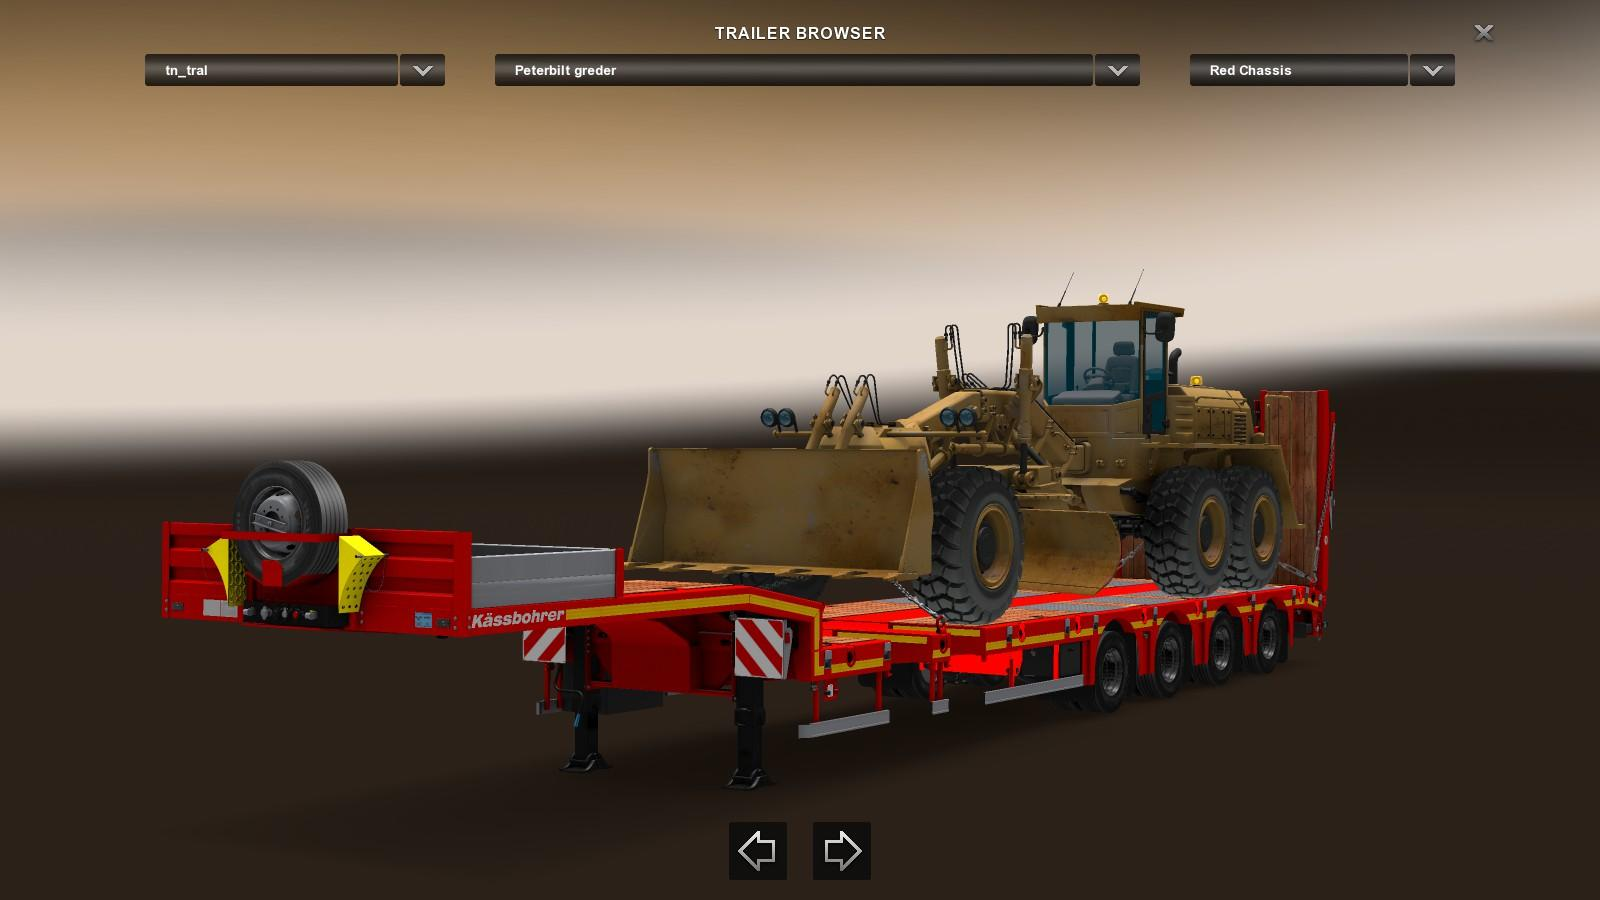 The Freightliner Cascadia Tomorrows Semi Truck likewise Original Scs Volvo Fh16 2012 Stobart additionally Rc Bulldozers besides Trucks And Trailers Pack By Lantmanen Fs 17 together with Dibujo Para Colorear Renault Magnum. on kenworth truck and trailer